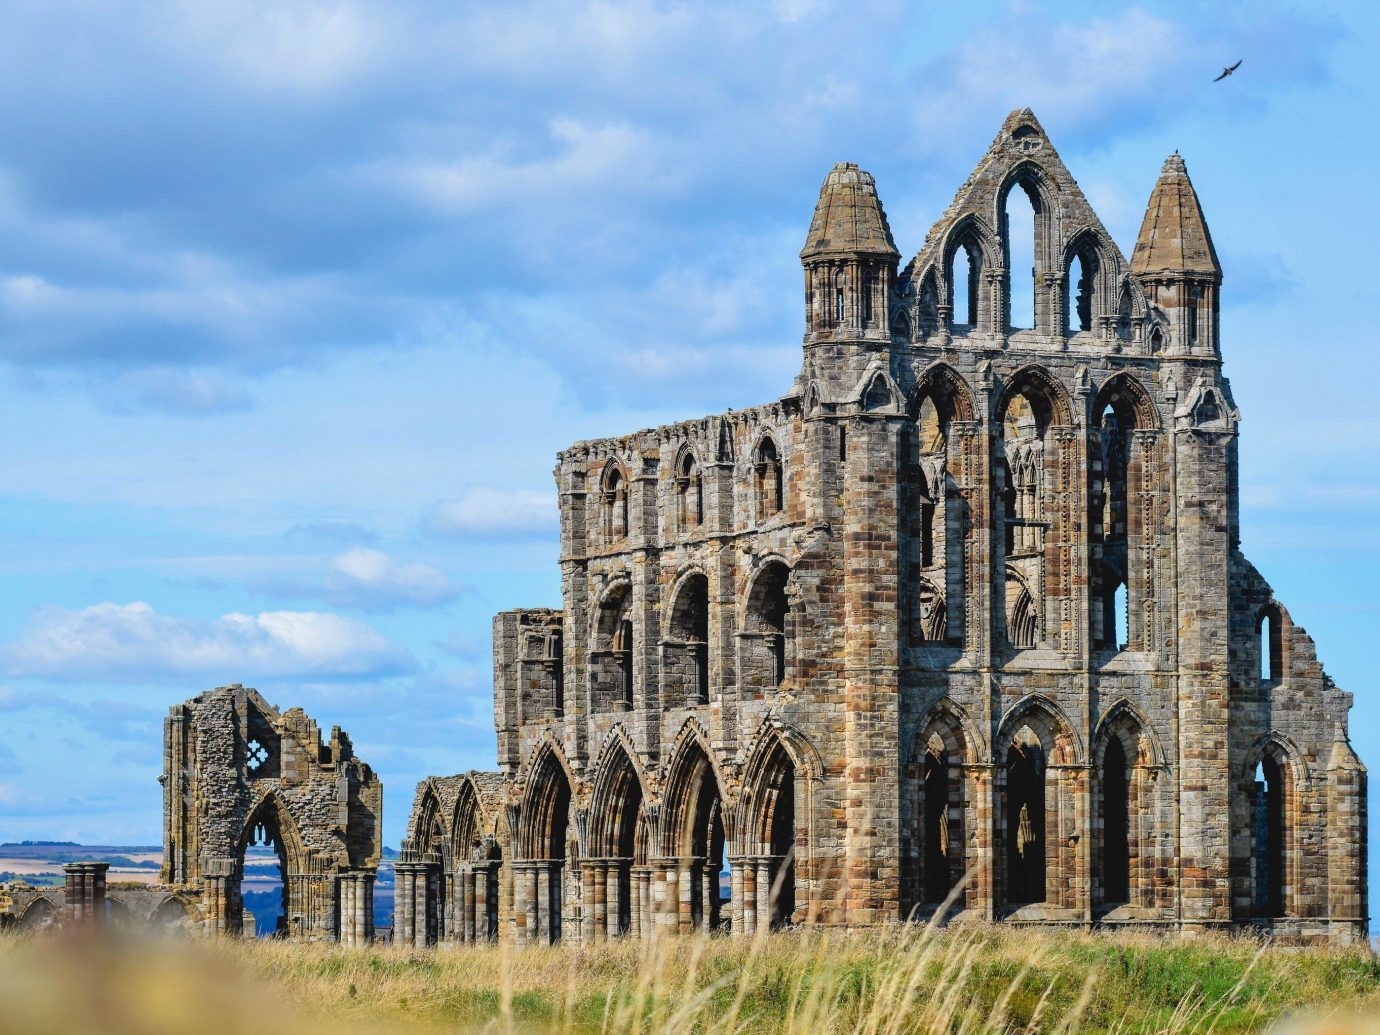 Romance Trip Ideas Weekend Getaways sky outdoor building historic site medieval architecture Church stone old cathedral place of worship Ruins abbey stately home big château steeple facade ancient history tall middle ages history tours spire listed building day